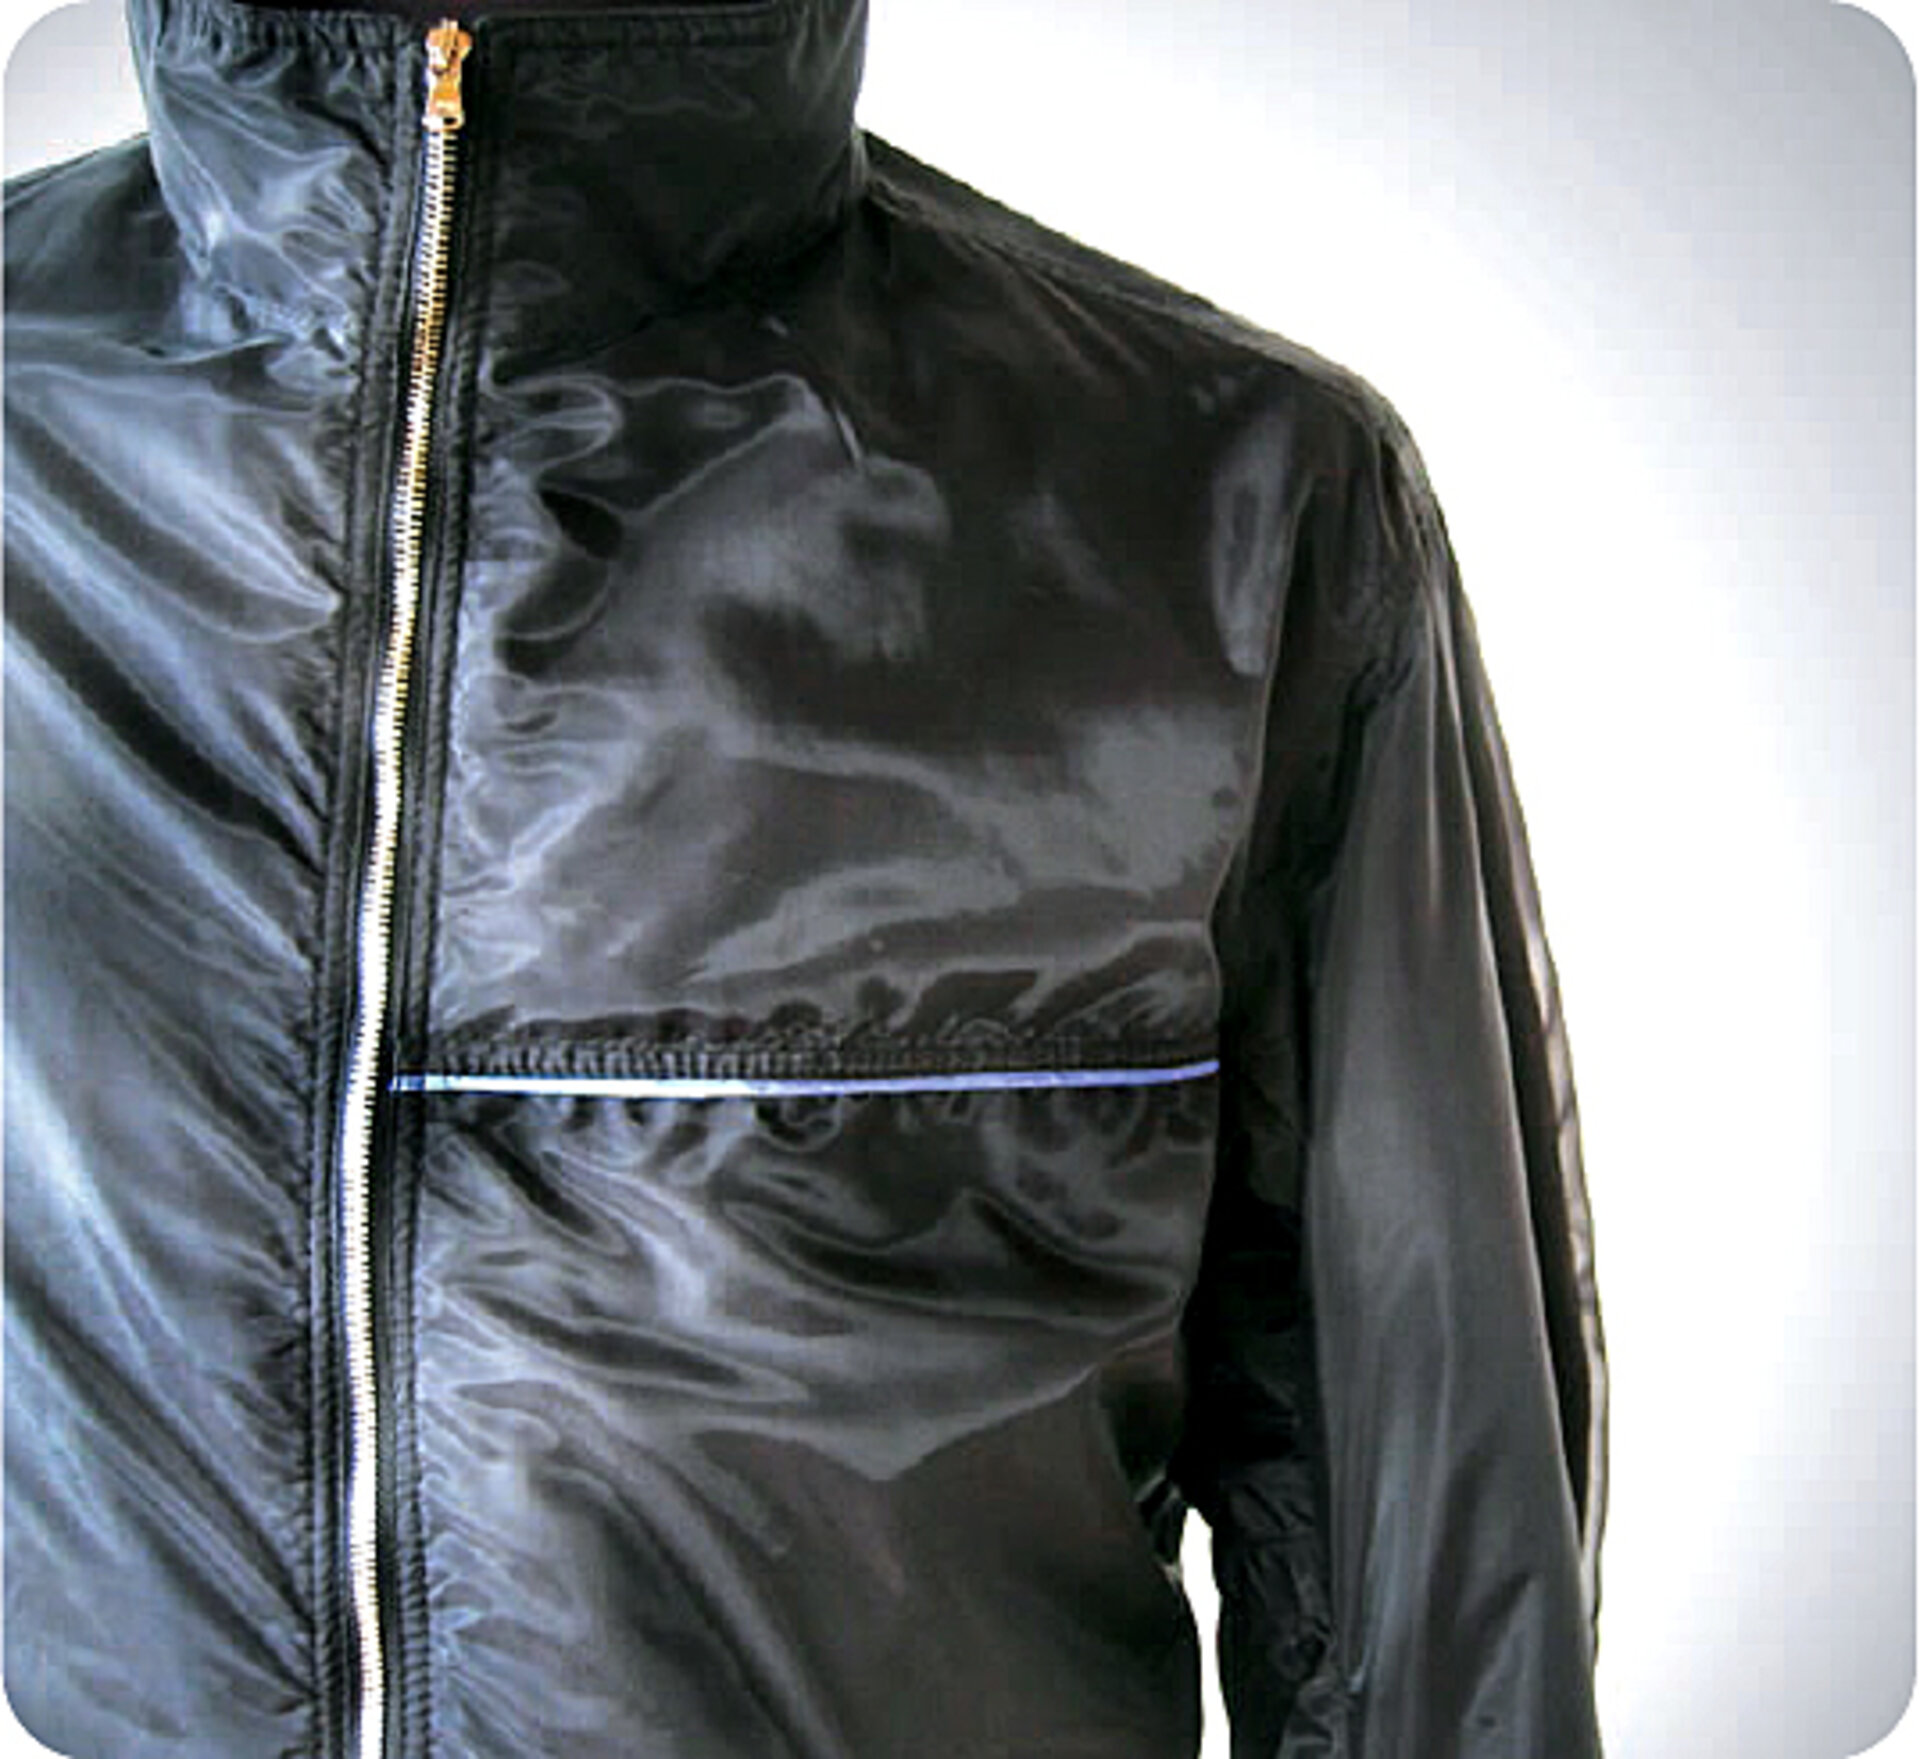 Absolut Zero jacket